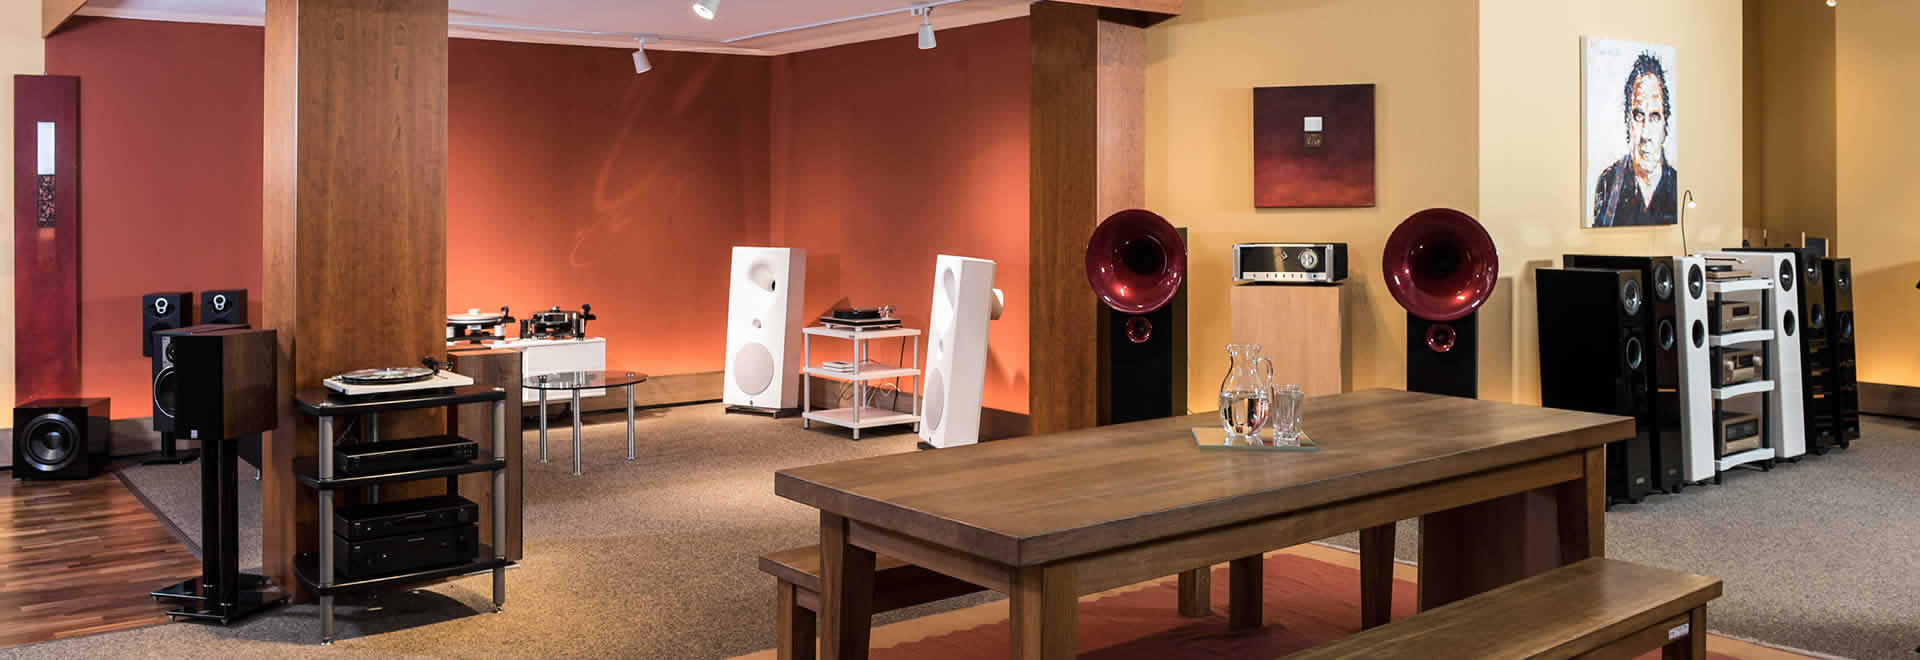 shop_hifi_high_end_hsga_bielefeldjpg